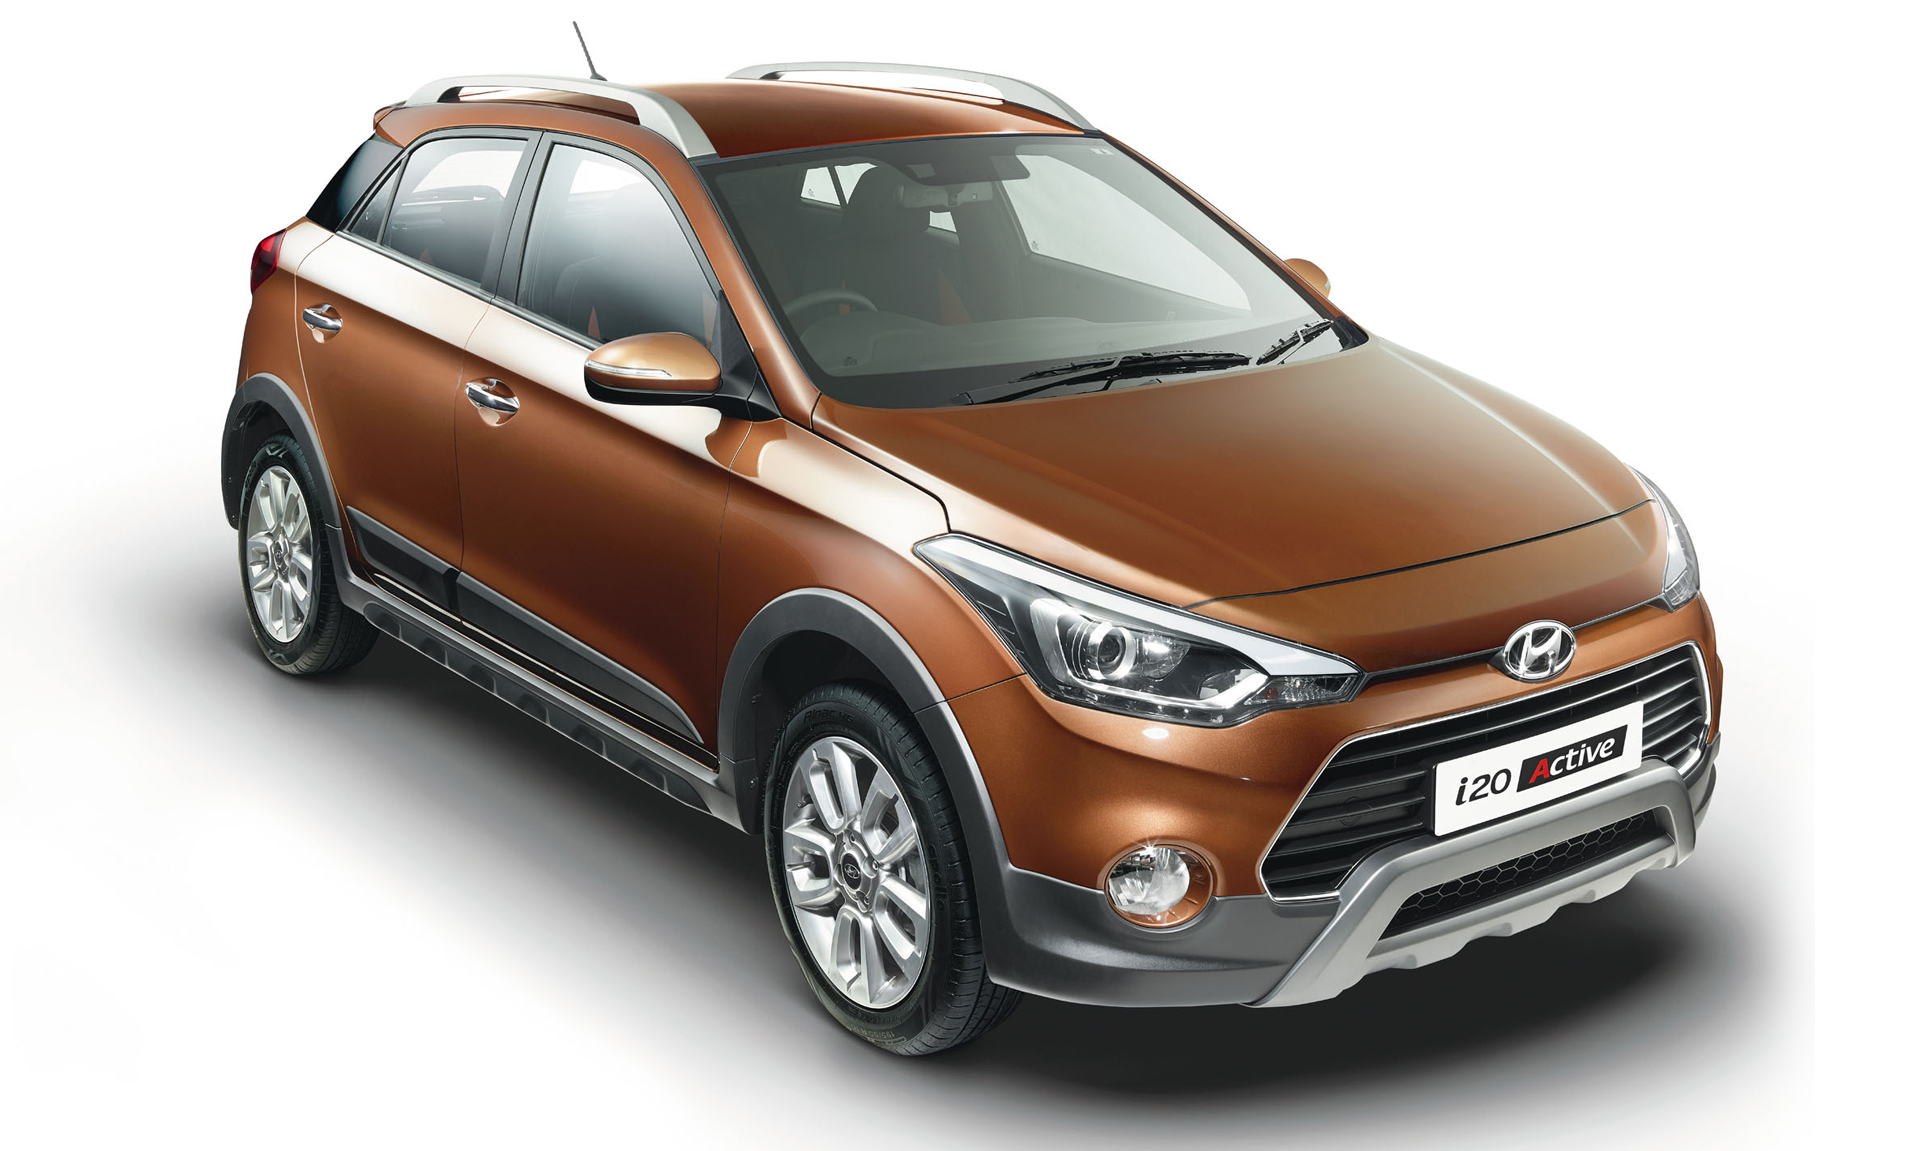 Rough and tough Hyundai i20 has a long way to go